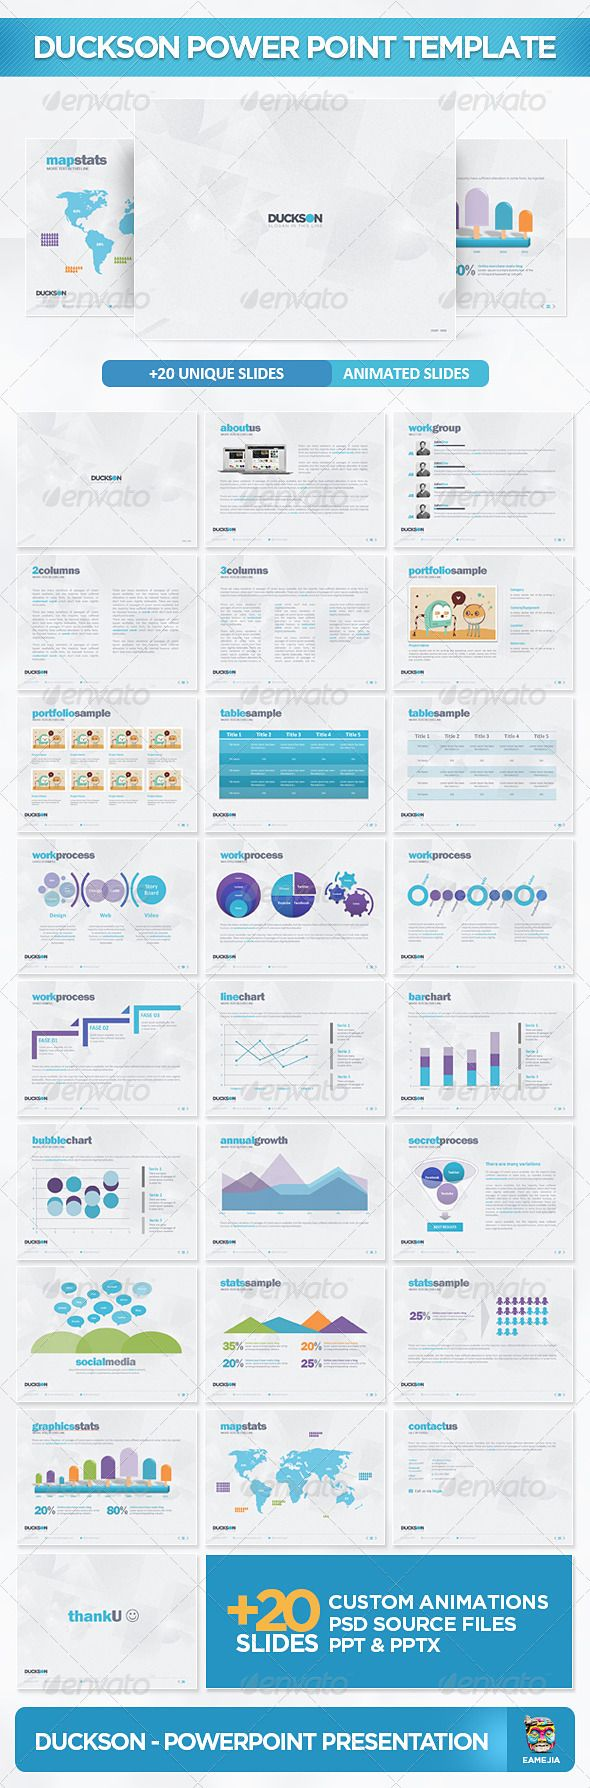 Presentation Templates - Duckson PowerPoint Presentation Template | GraphicRiver